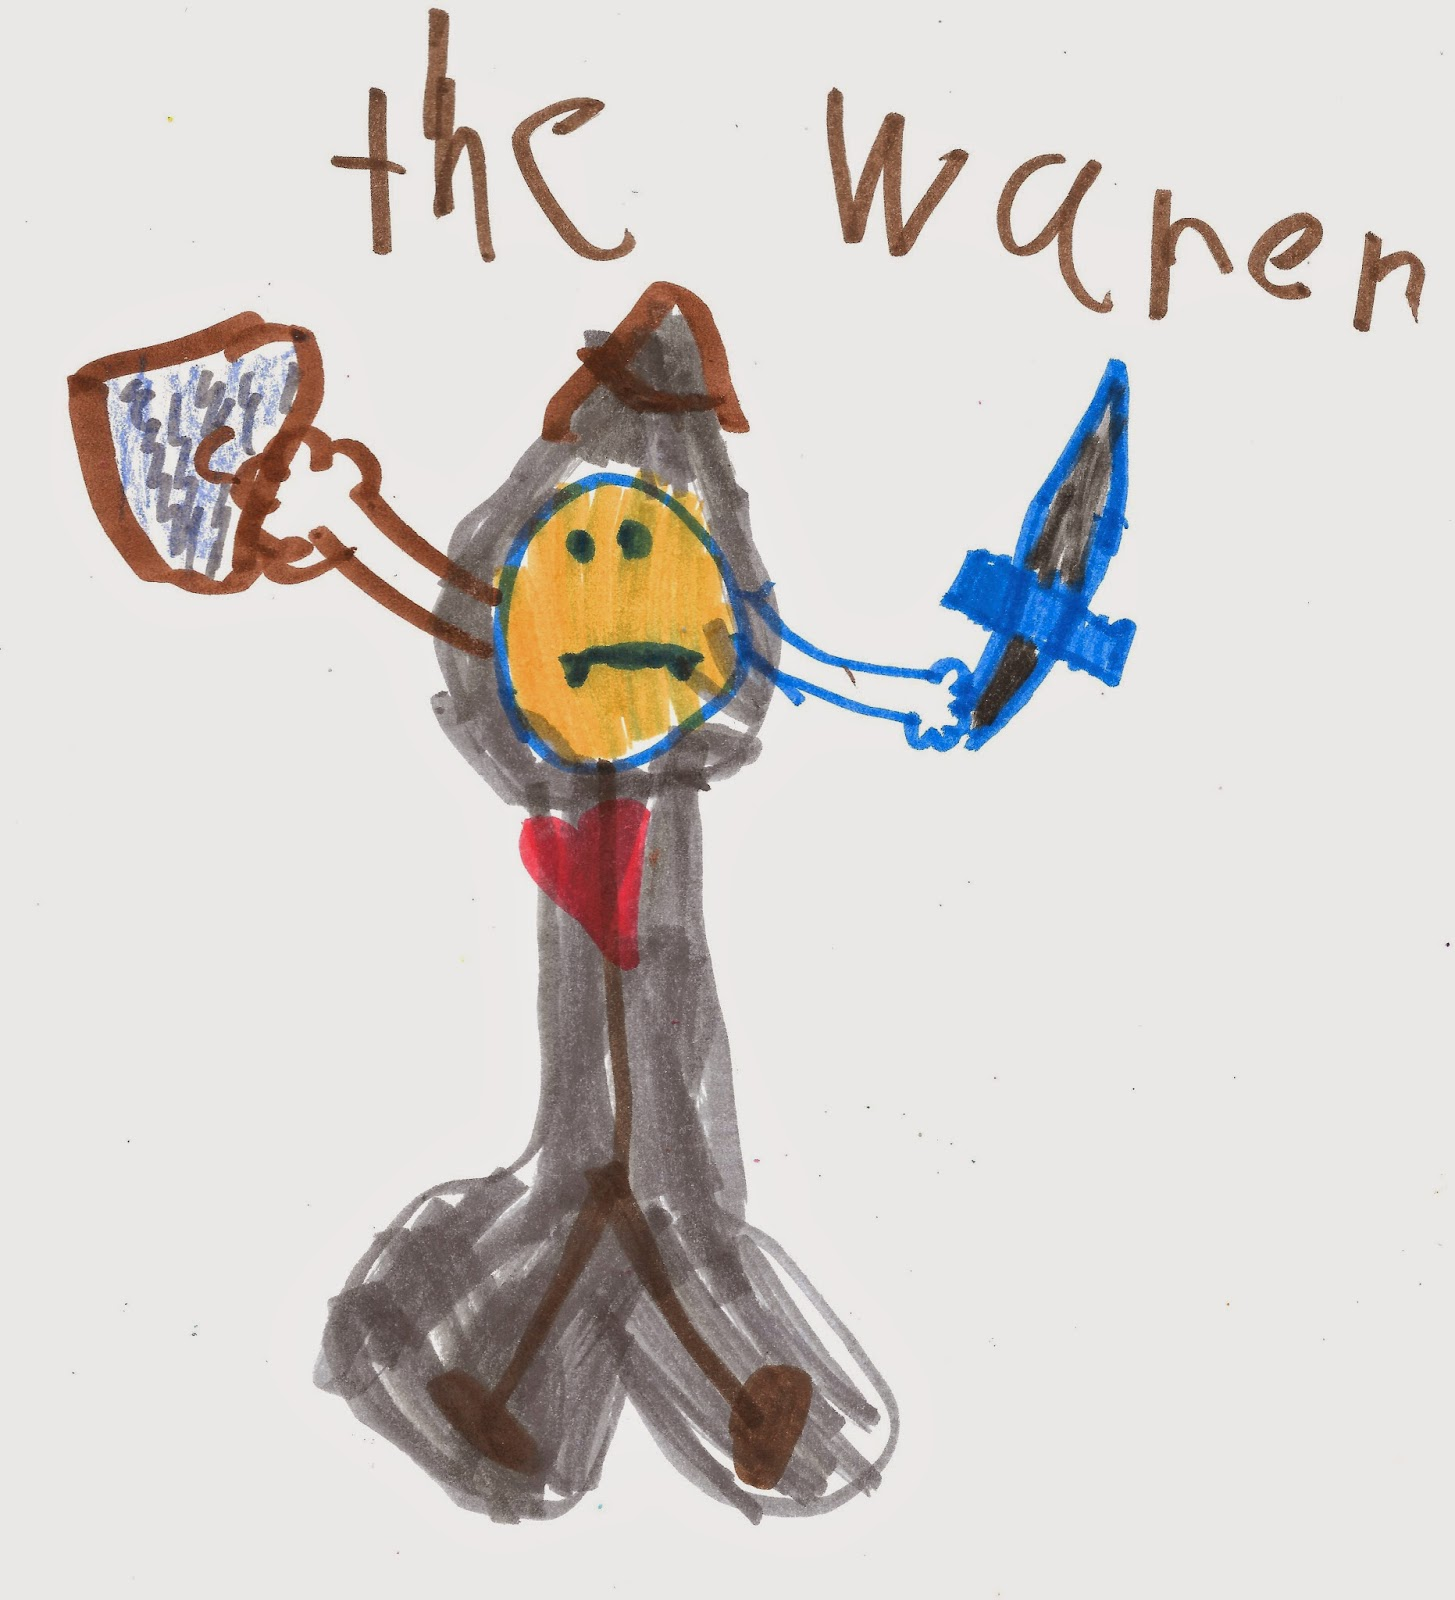 """Warrior Scandal: Drawn To The 80's: """"The Warrior"""" Scandal, 1984"""